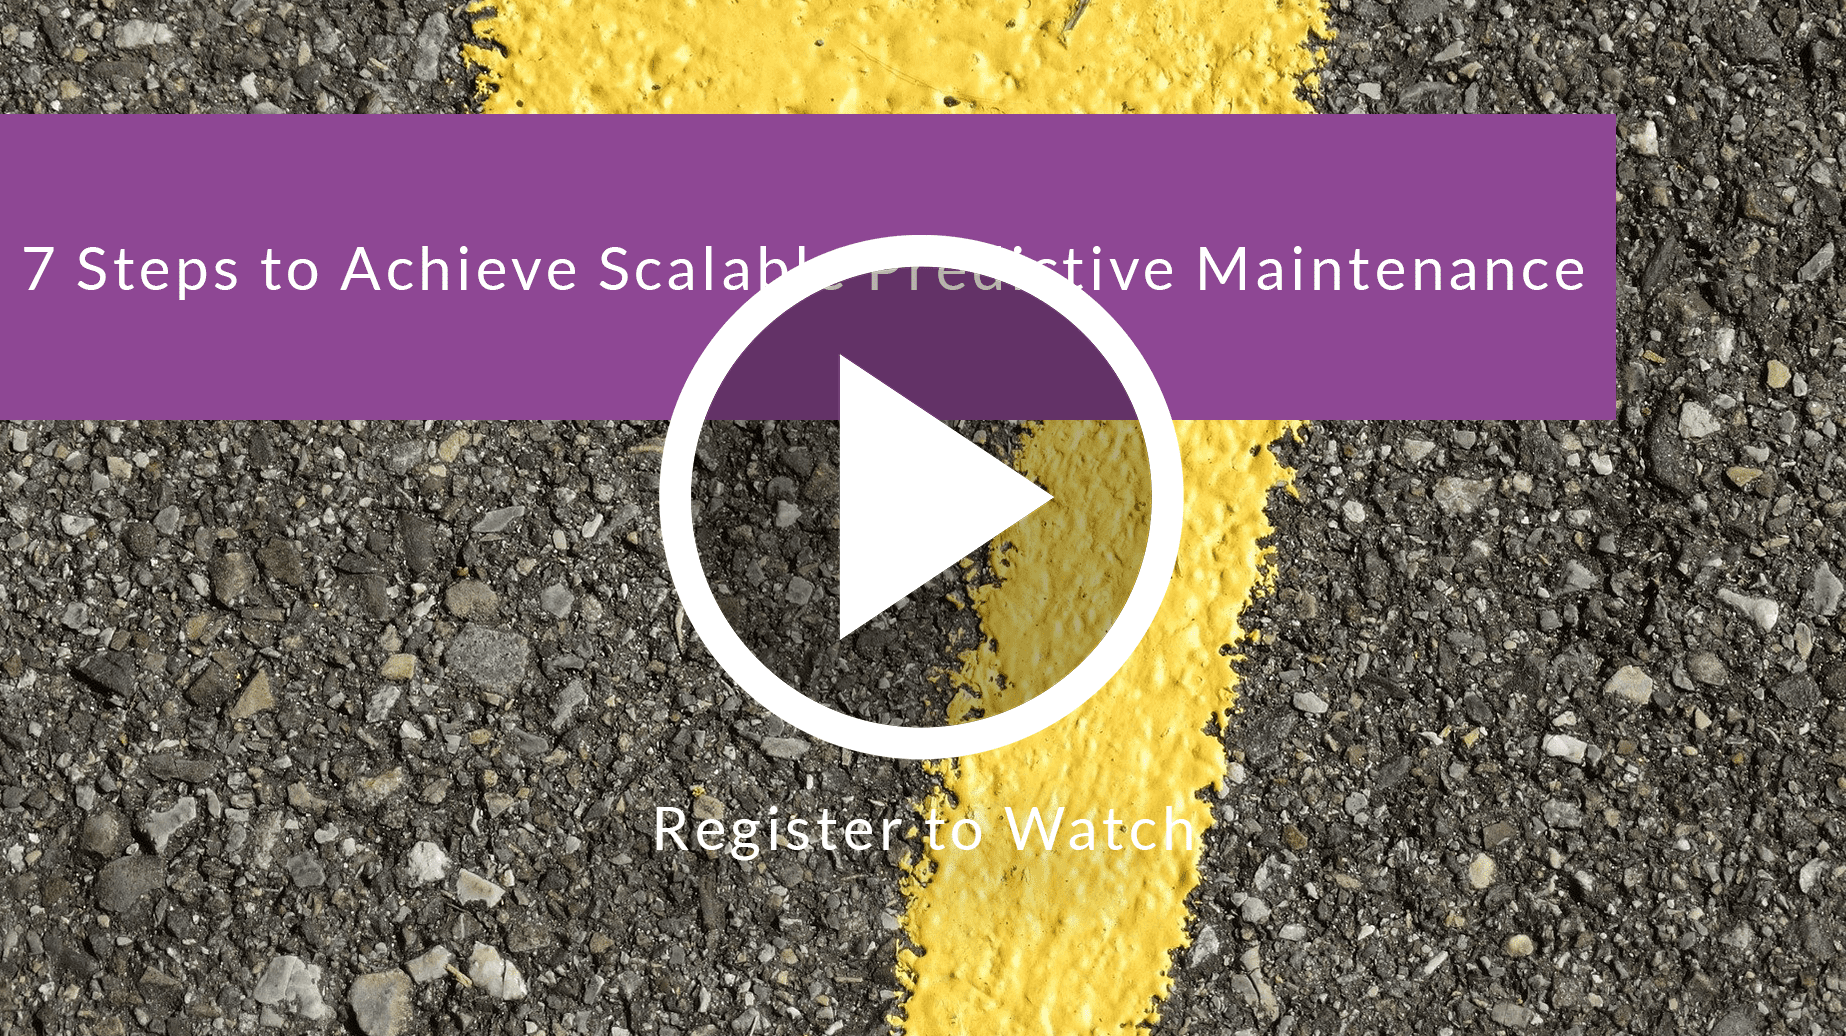 7 Steps to Achieve Scalable Predictive Maintenance